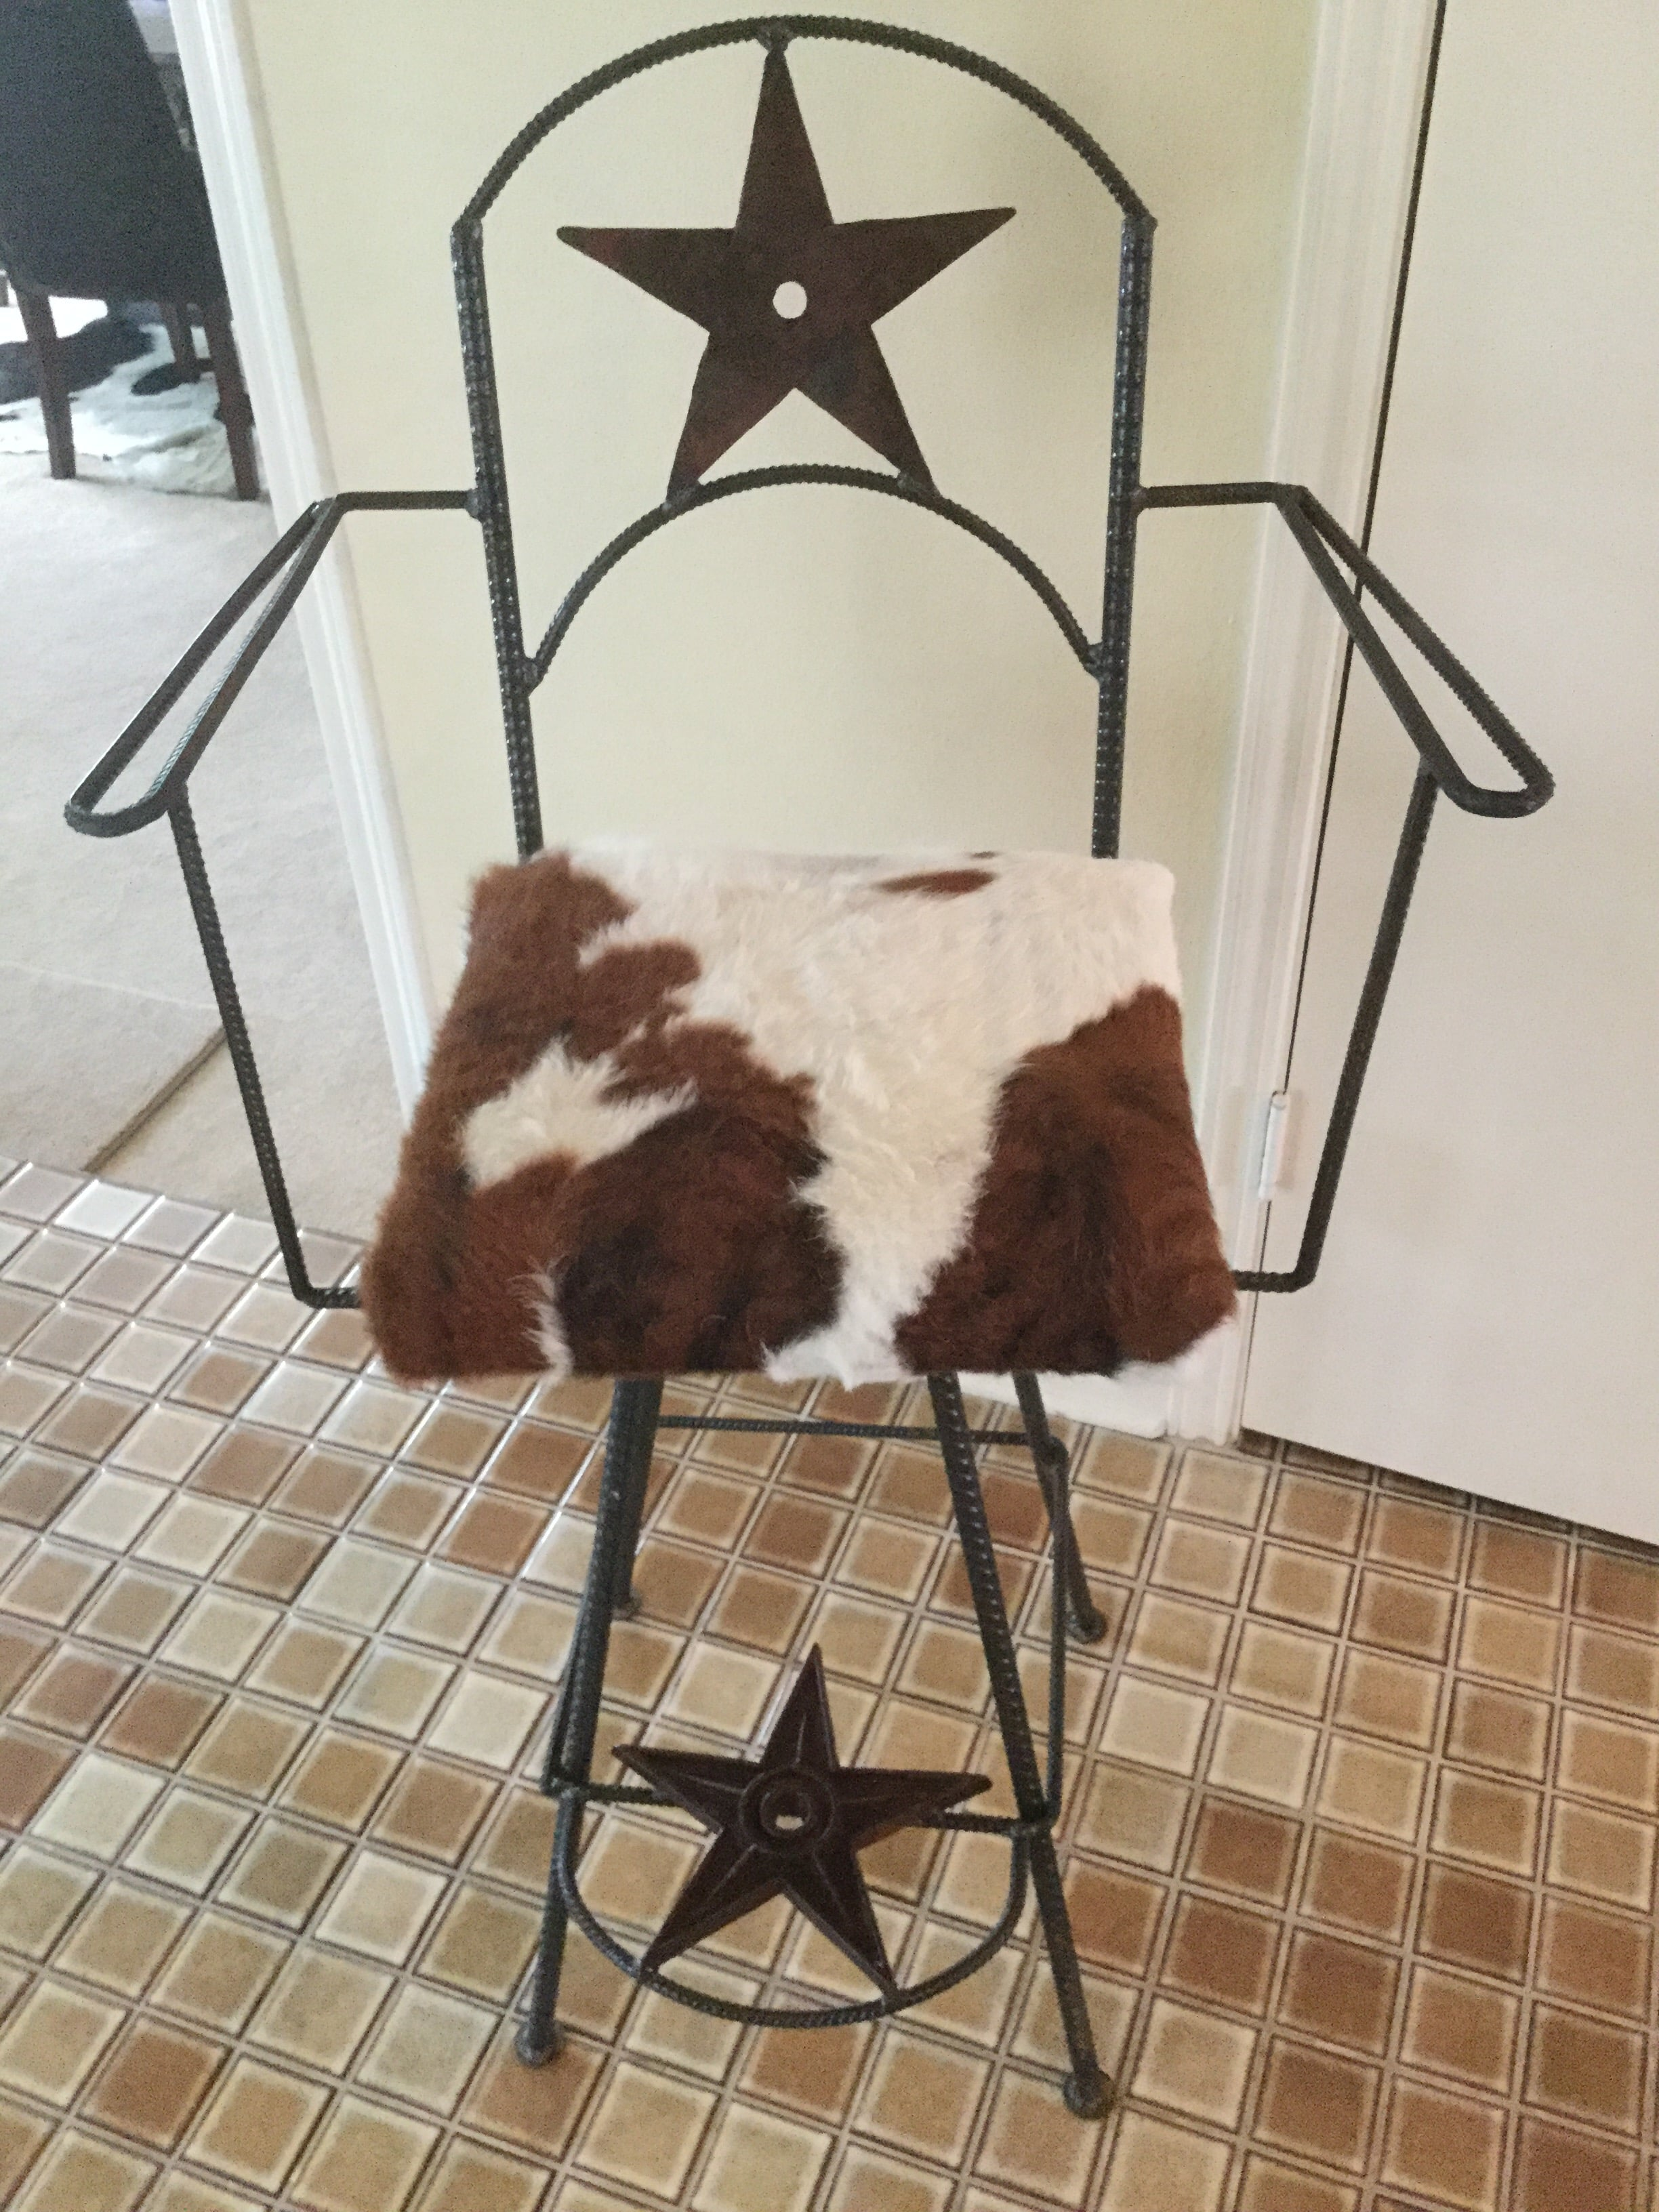 Bar Chair, Swivel, Star, Cowhide Arms1 Min